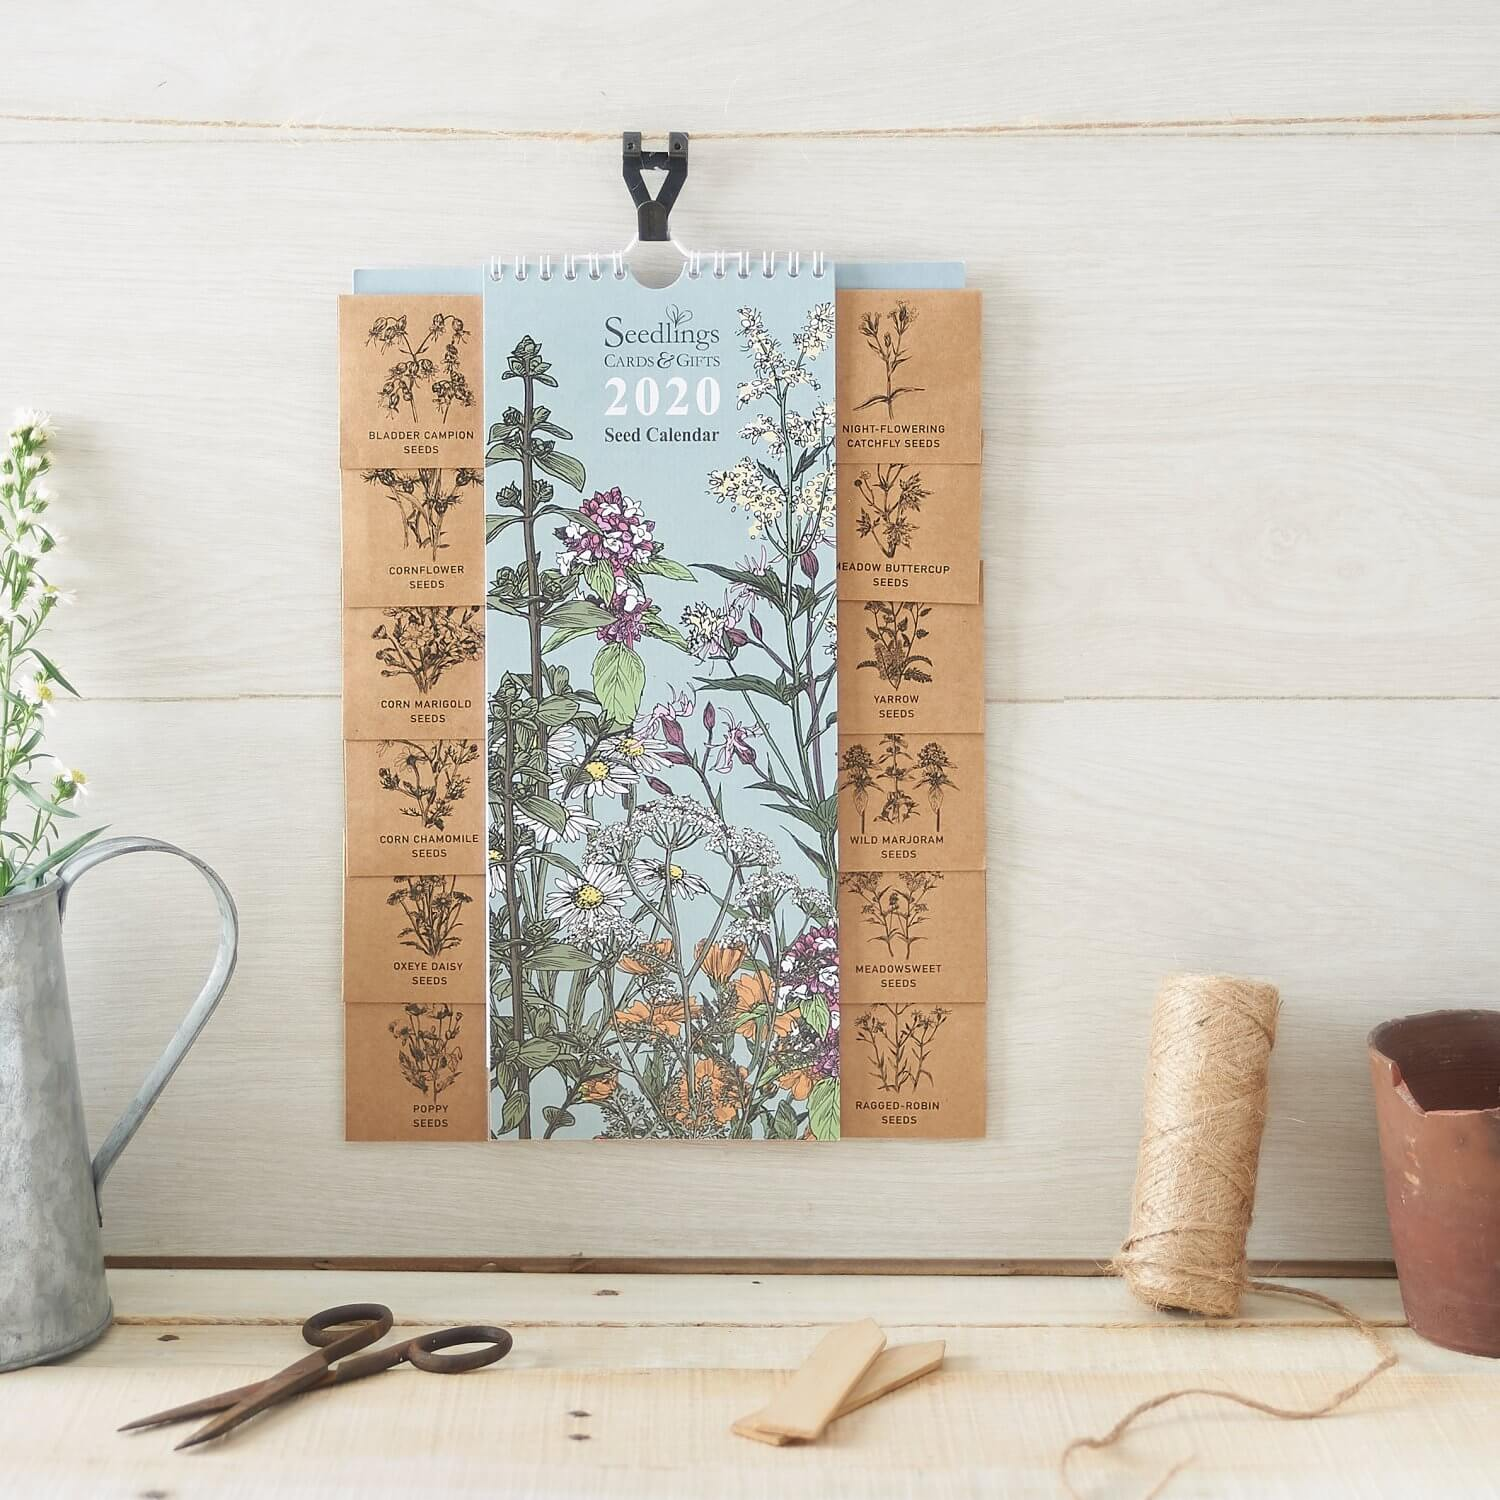 Rustic backdrop and surface used in this product photograph of a Seedlings calendar